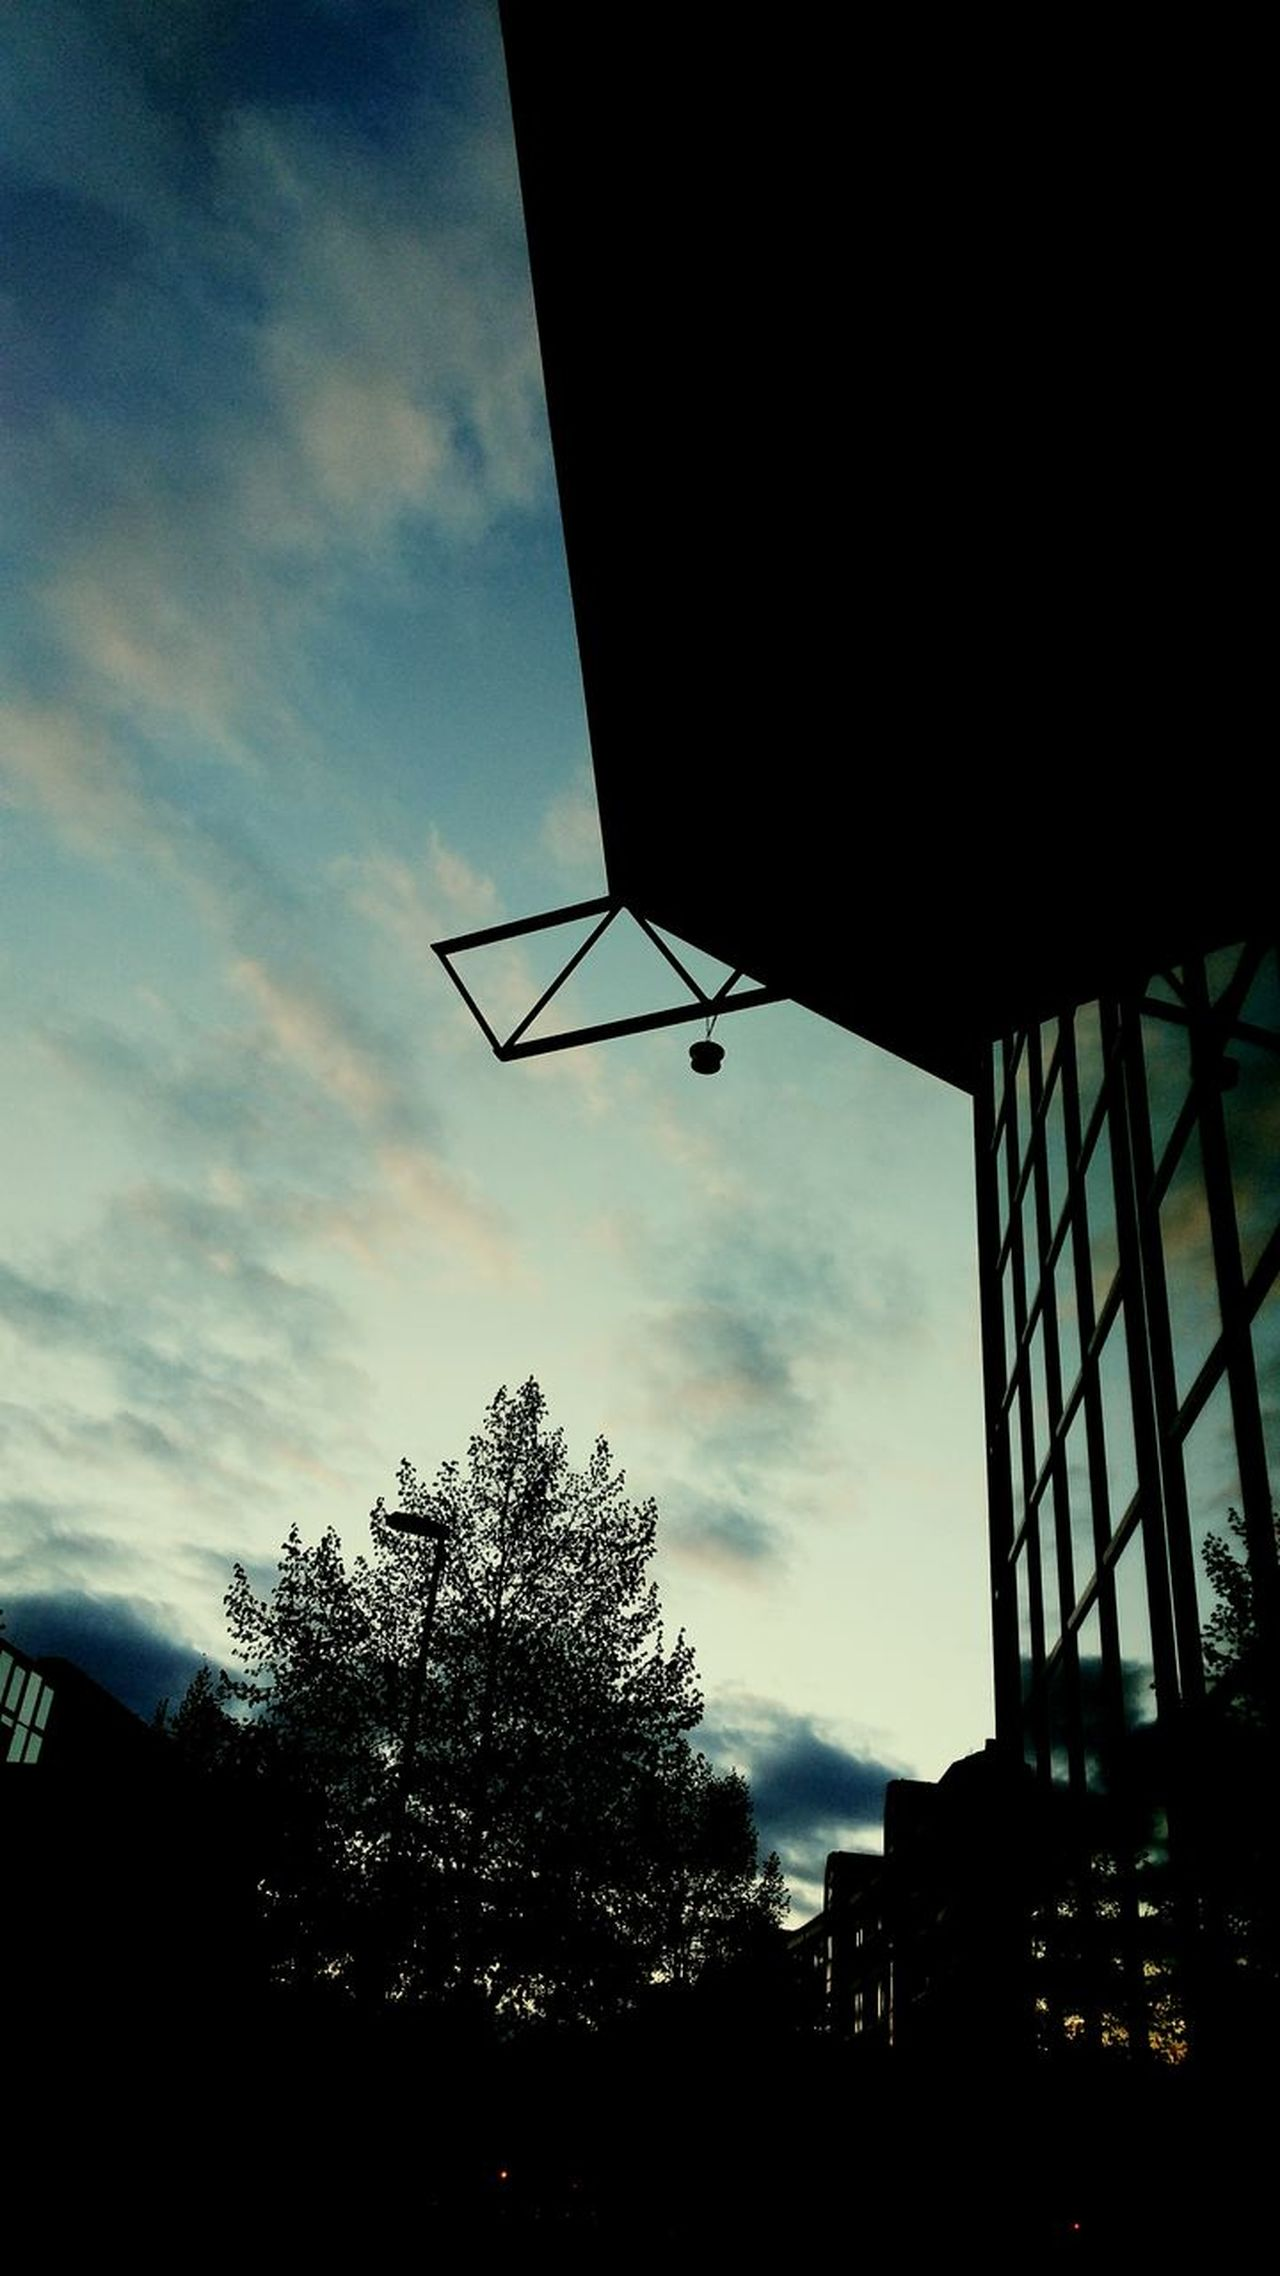 EyeEmNewHere Low Angle View Cloud - Sky Sky Silhouette Outdoors No People Day Gebäude Gebäudekunst Gebäude Architektur House Facade Buildings And Sky Building Photography Lampe